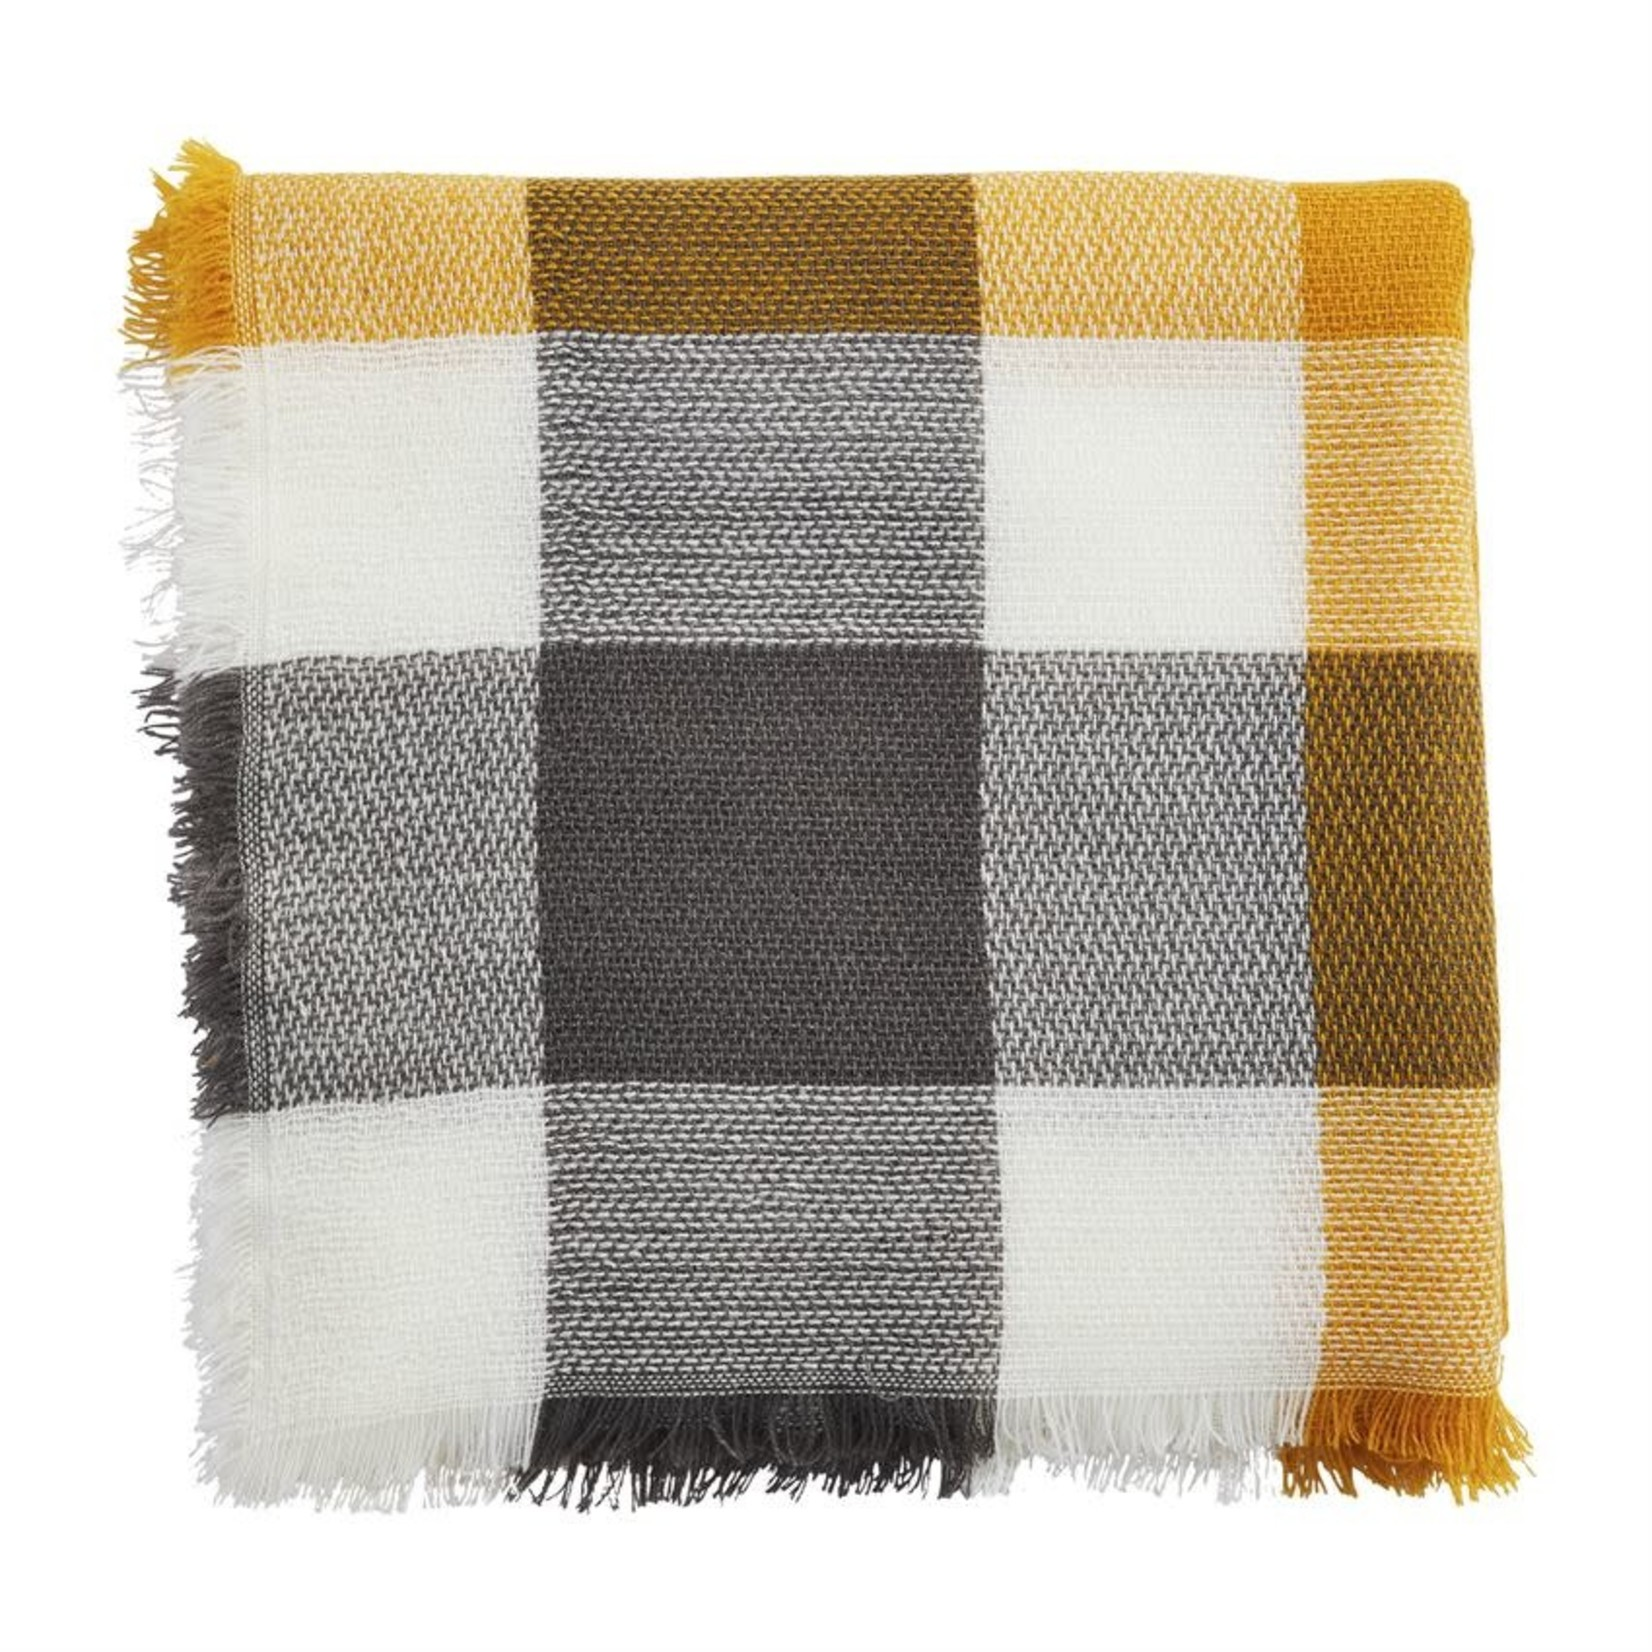 Square Plaid Scarf in Mustard